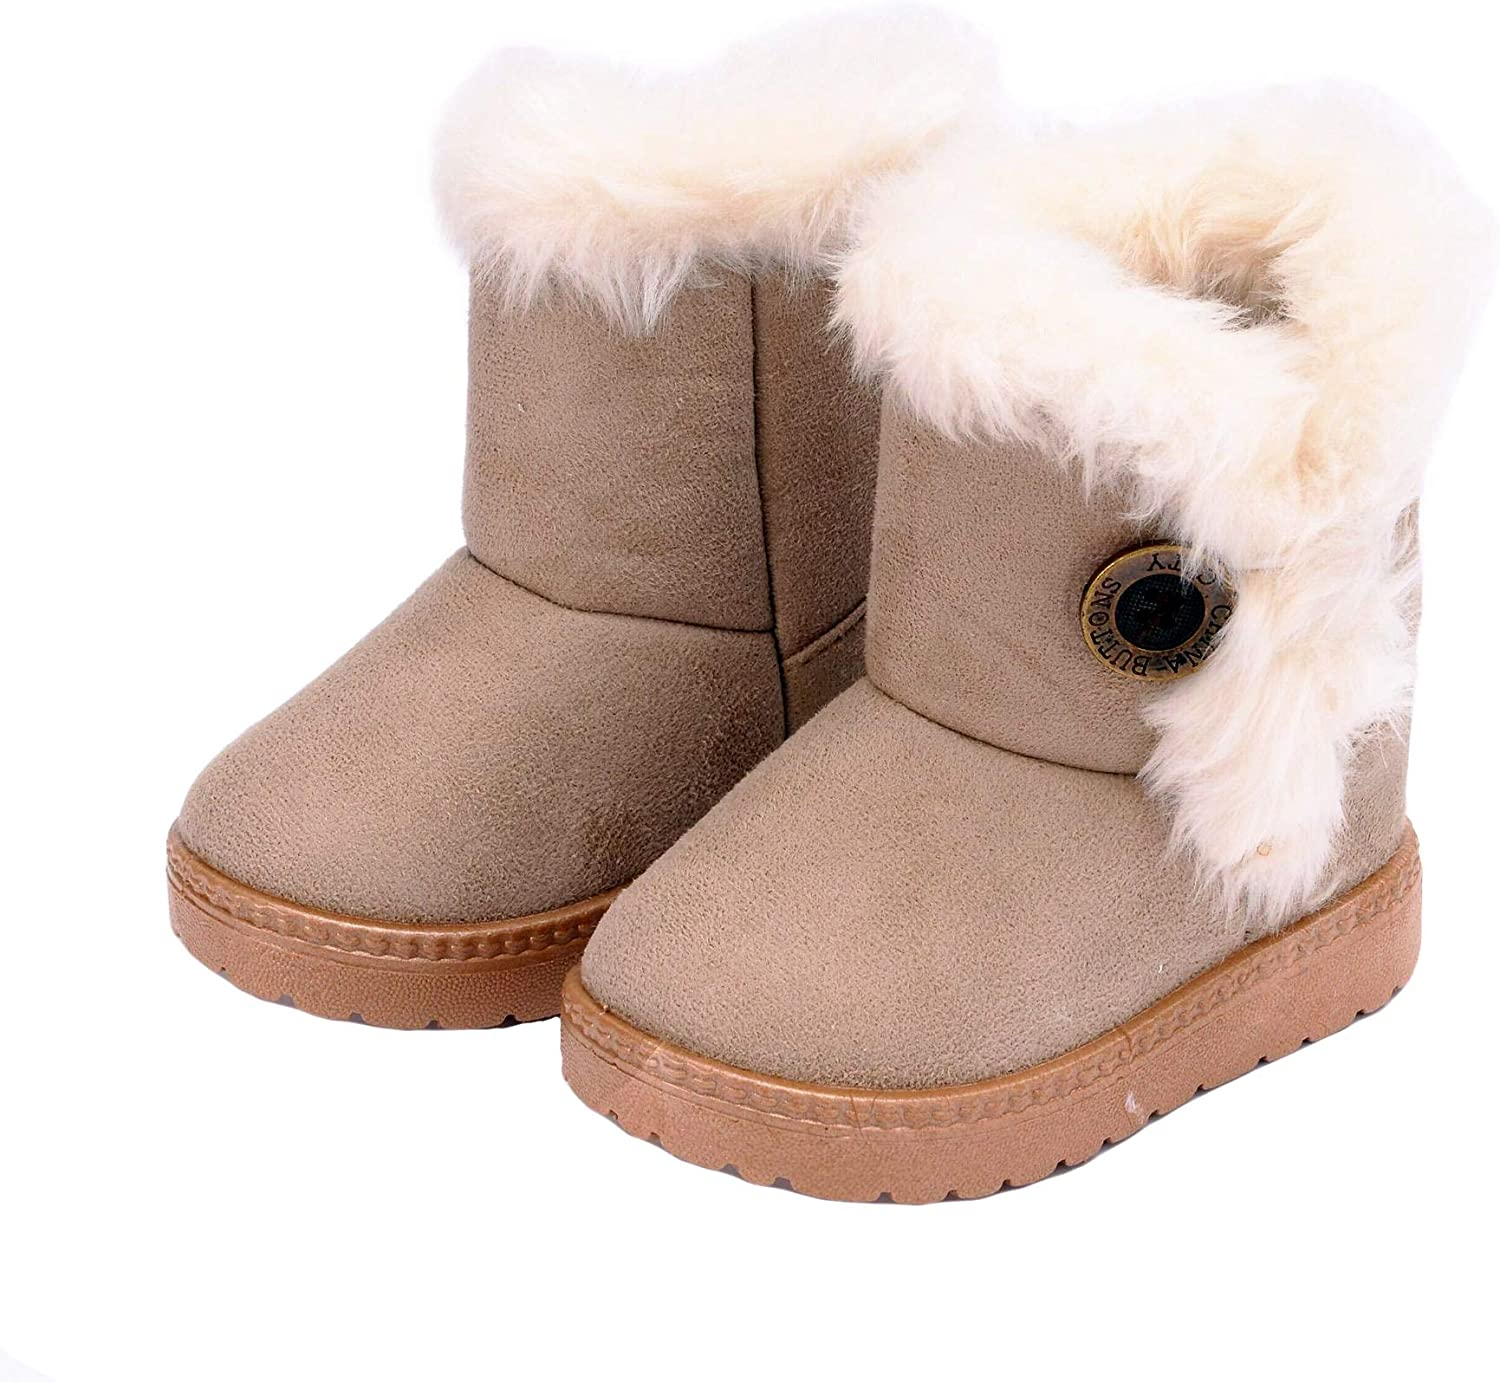 snow boots for toddler girl